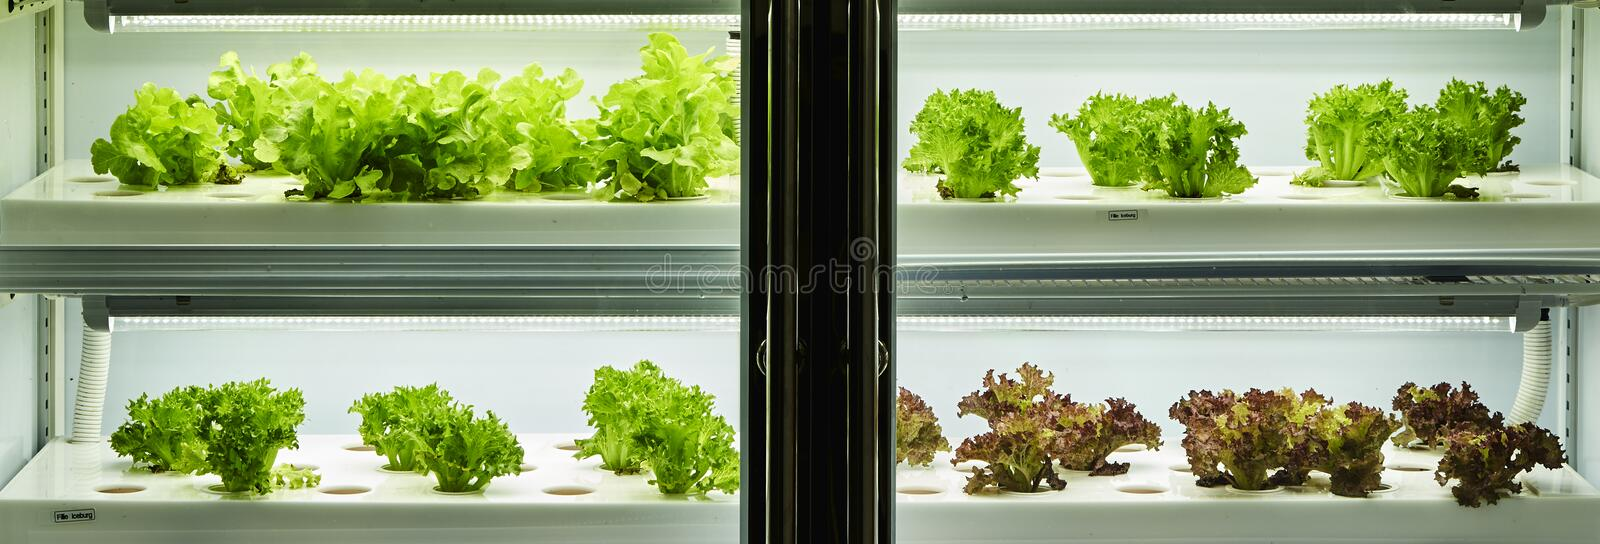 Organic hydroponic vegetable royalty free stock photo